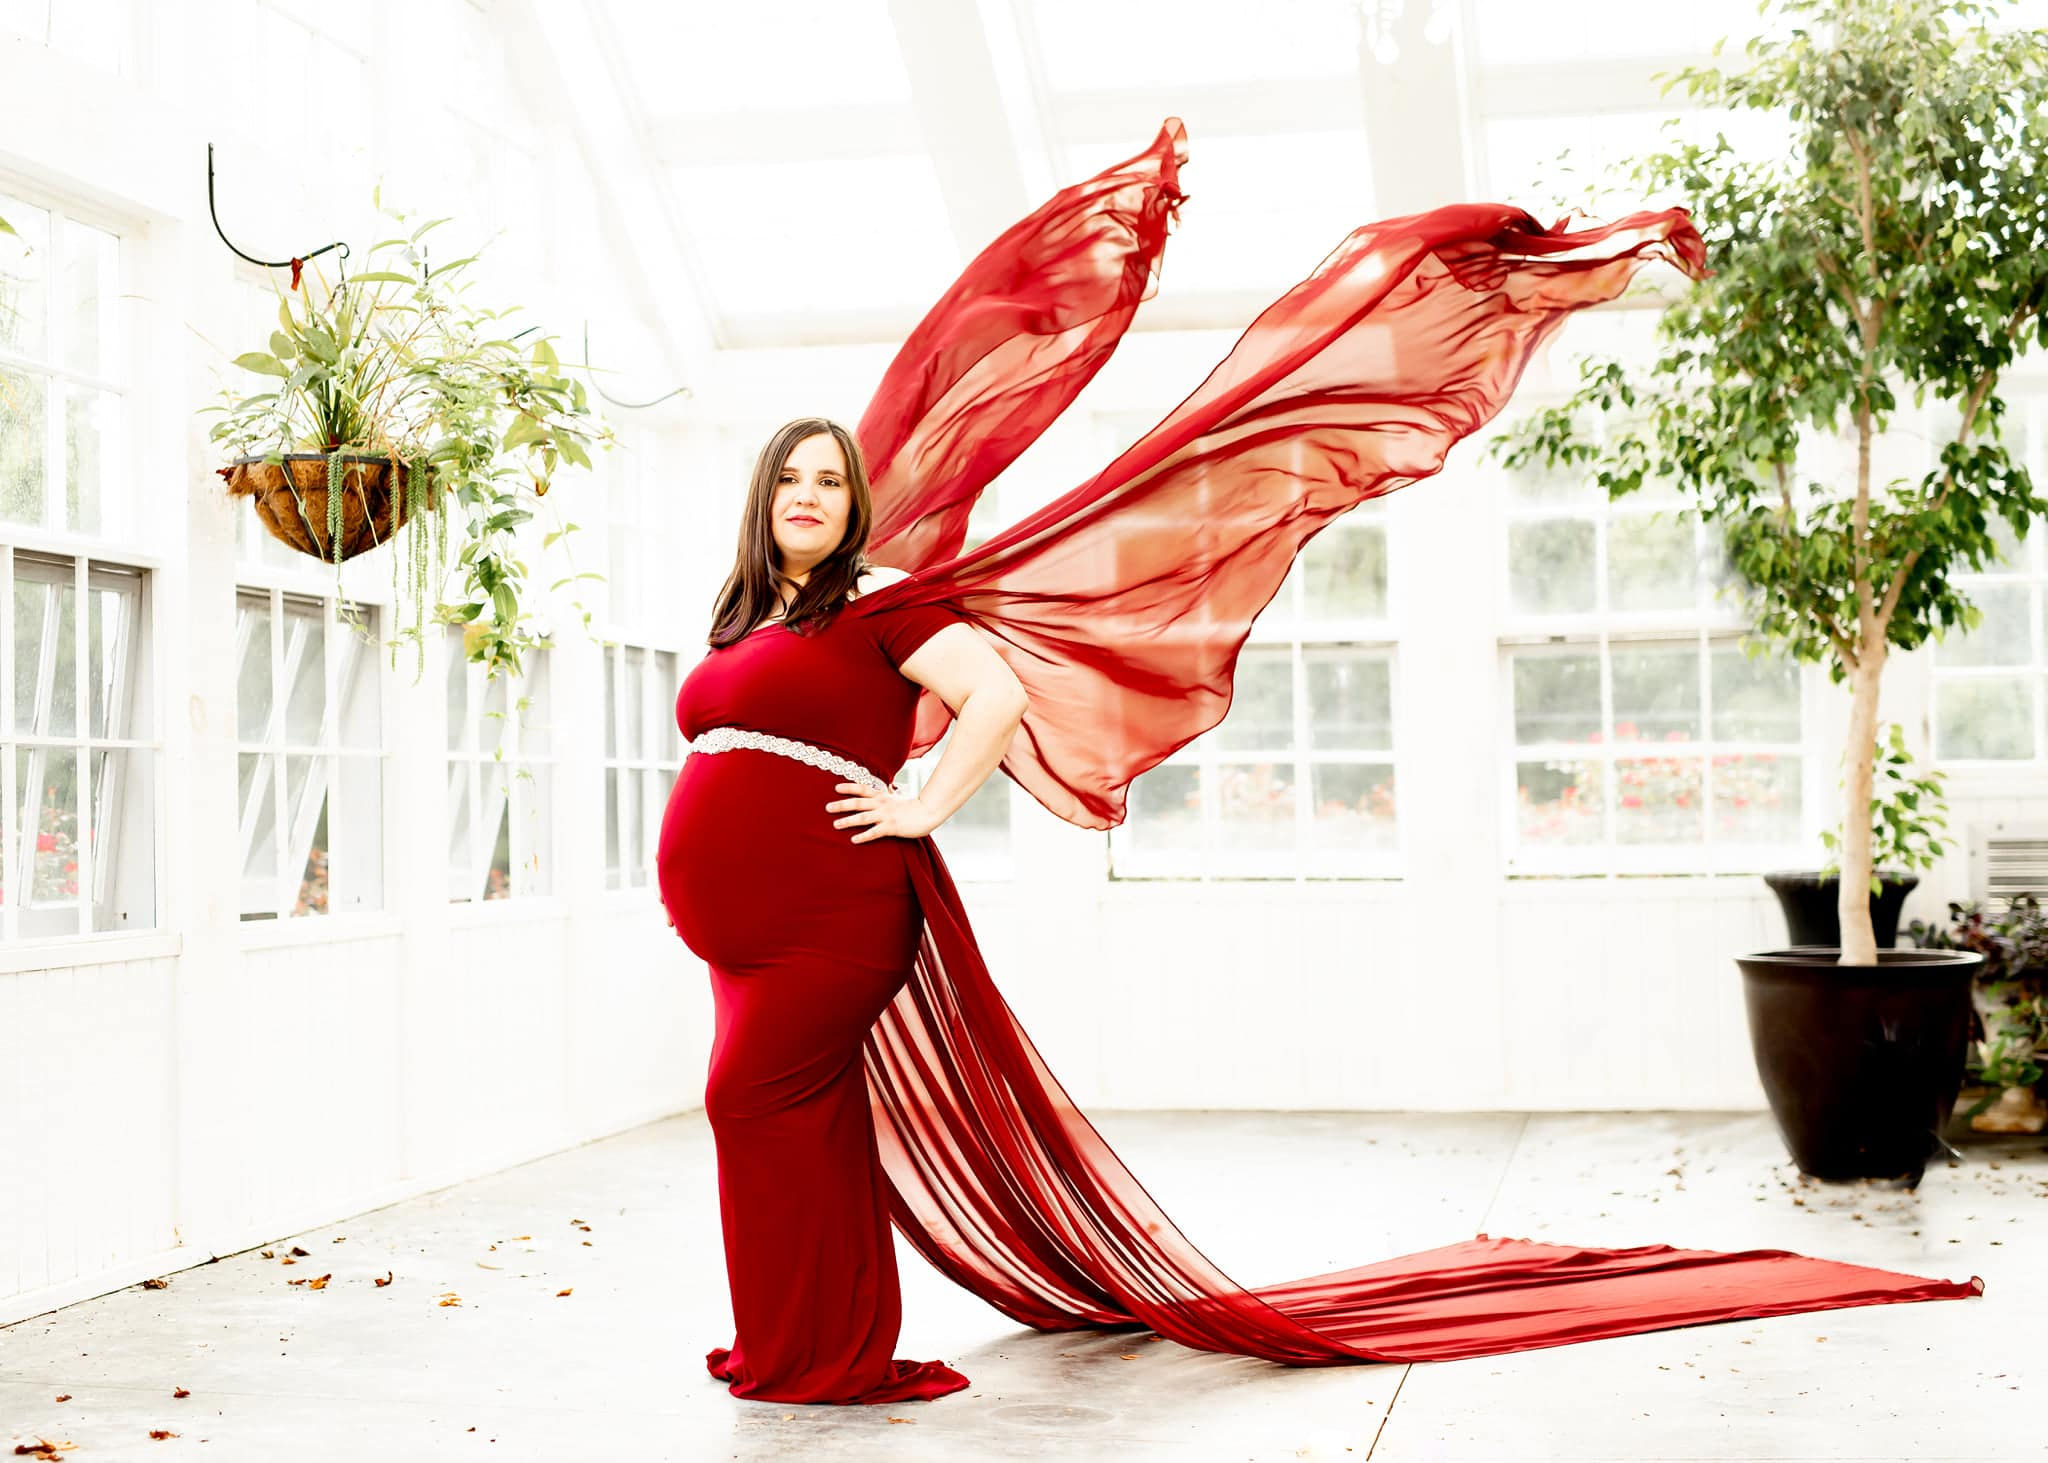 Creative maternity photo session by Art Inspired Images